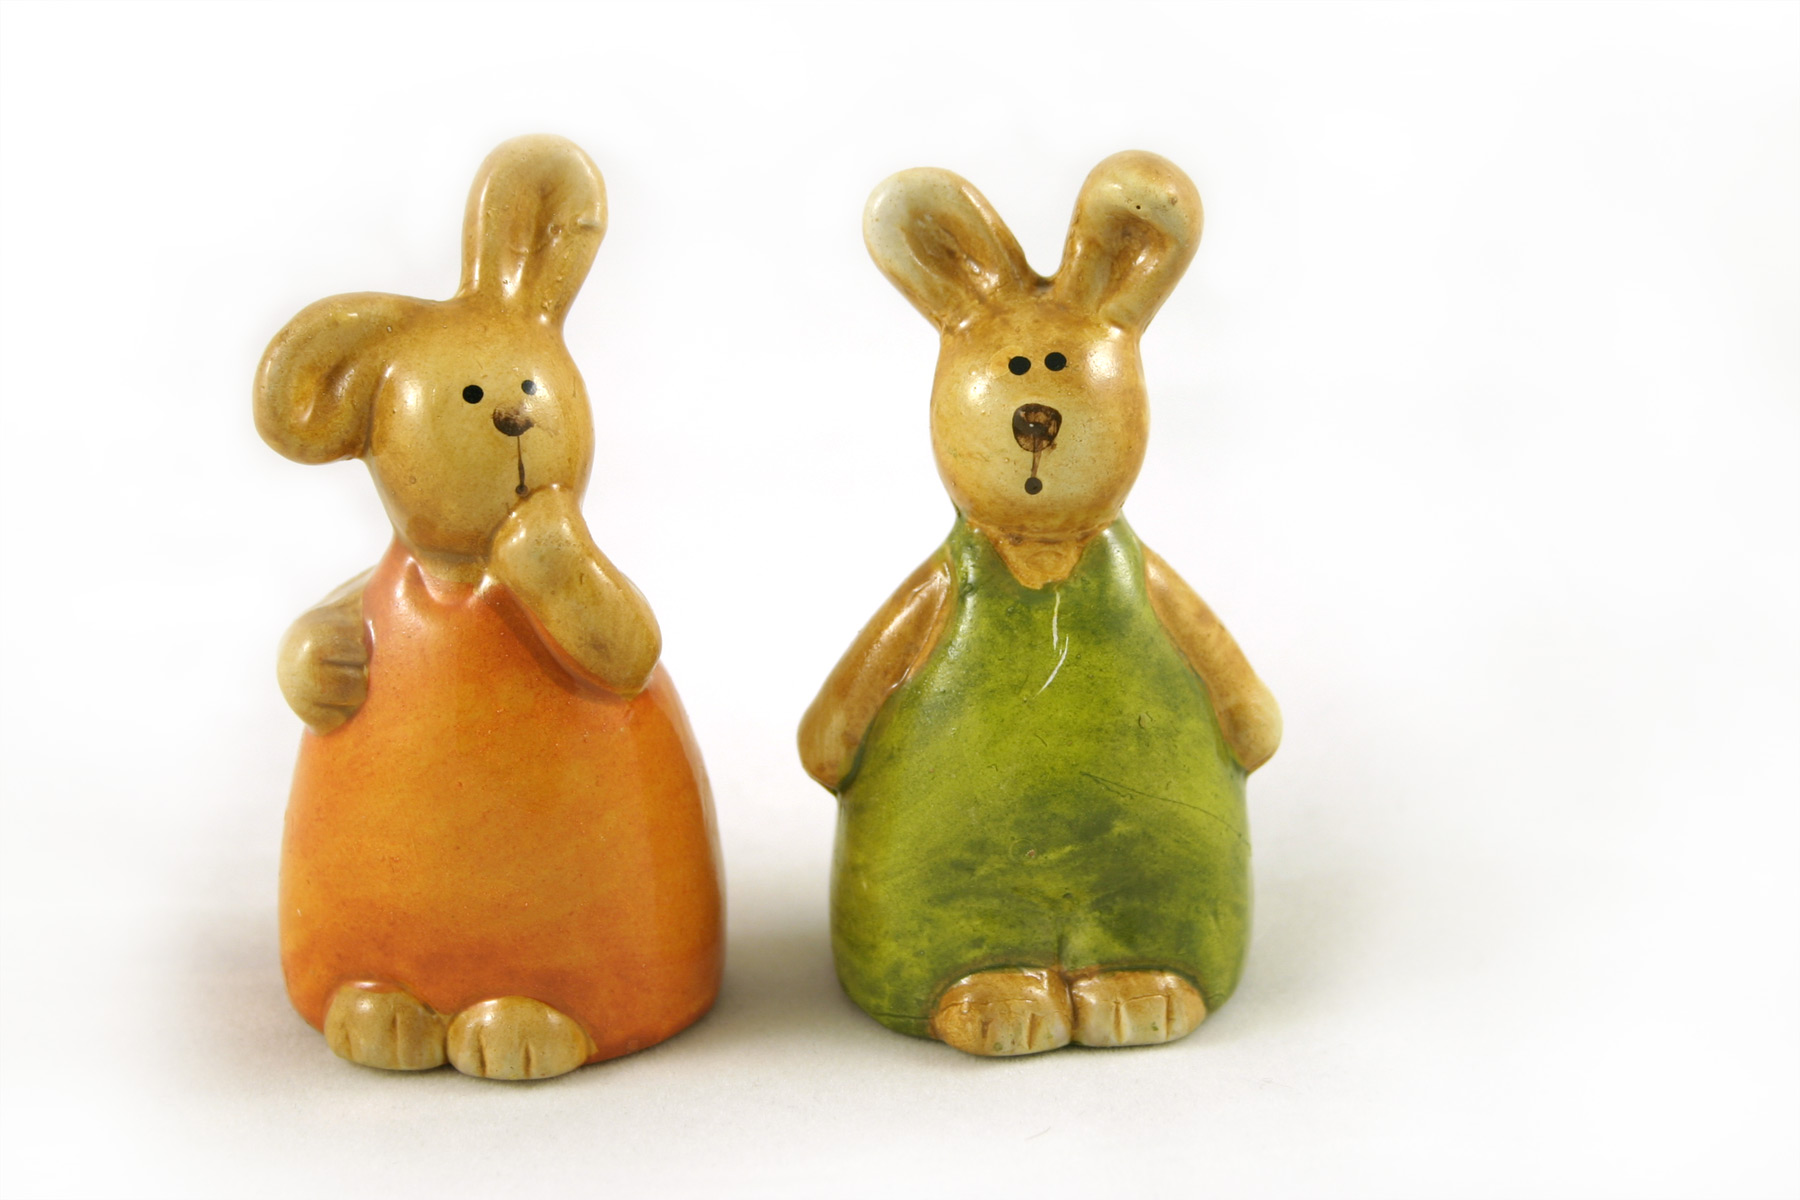 Easter rabbits, Cute, Easter, Glass, Green, HQ Photo